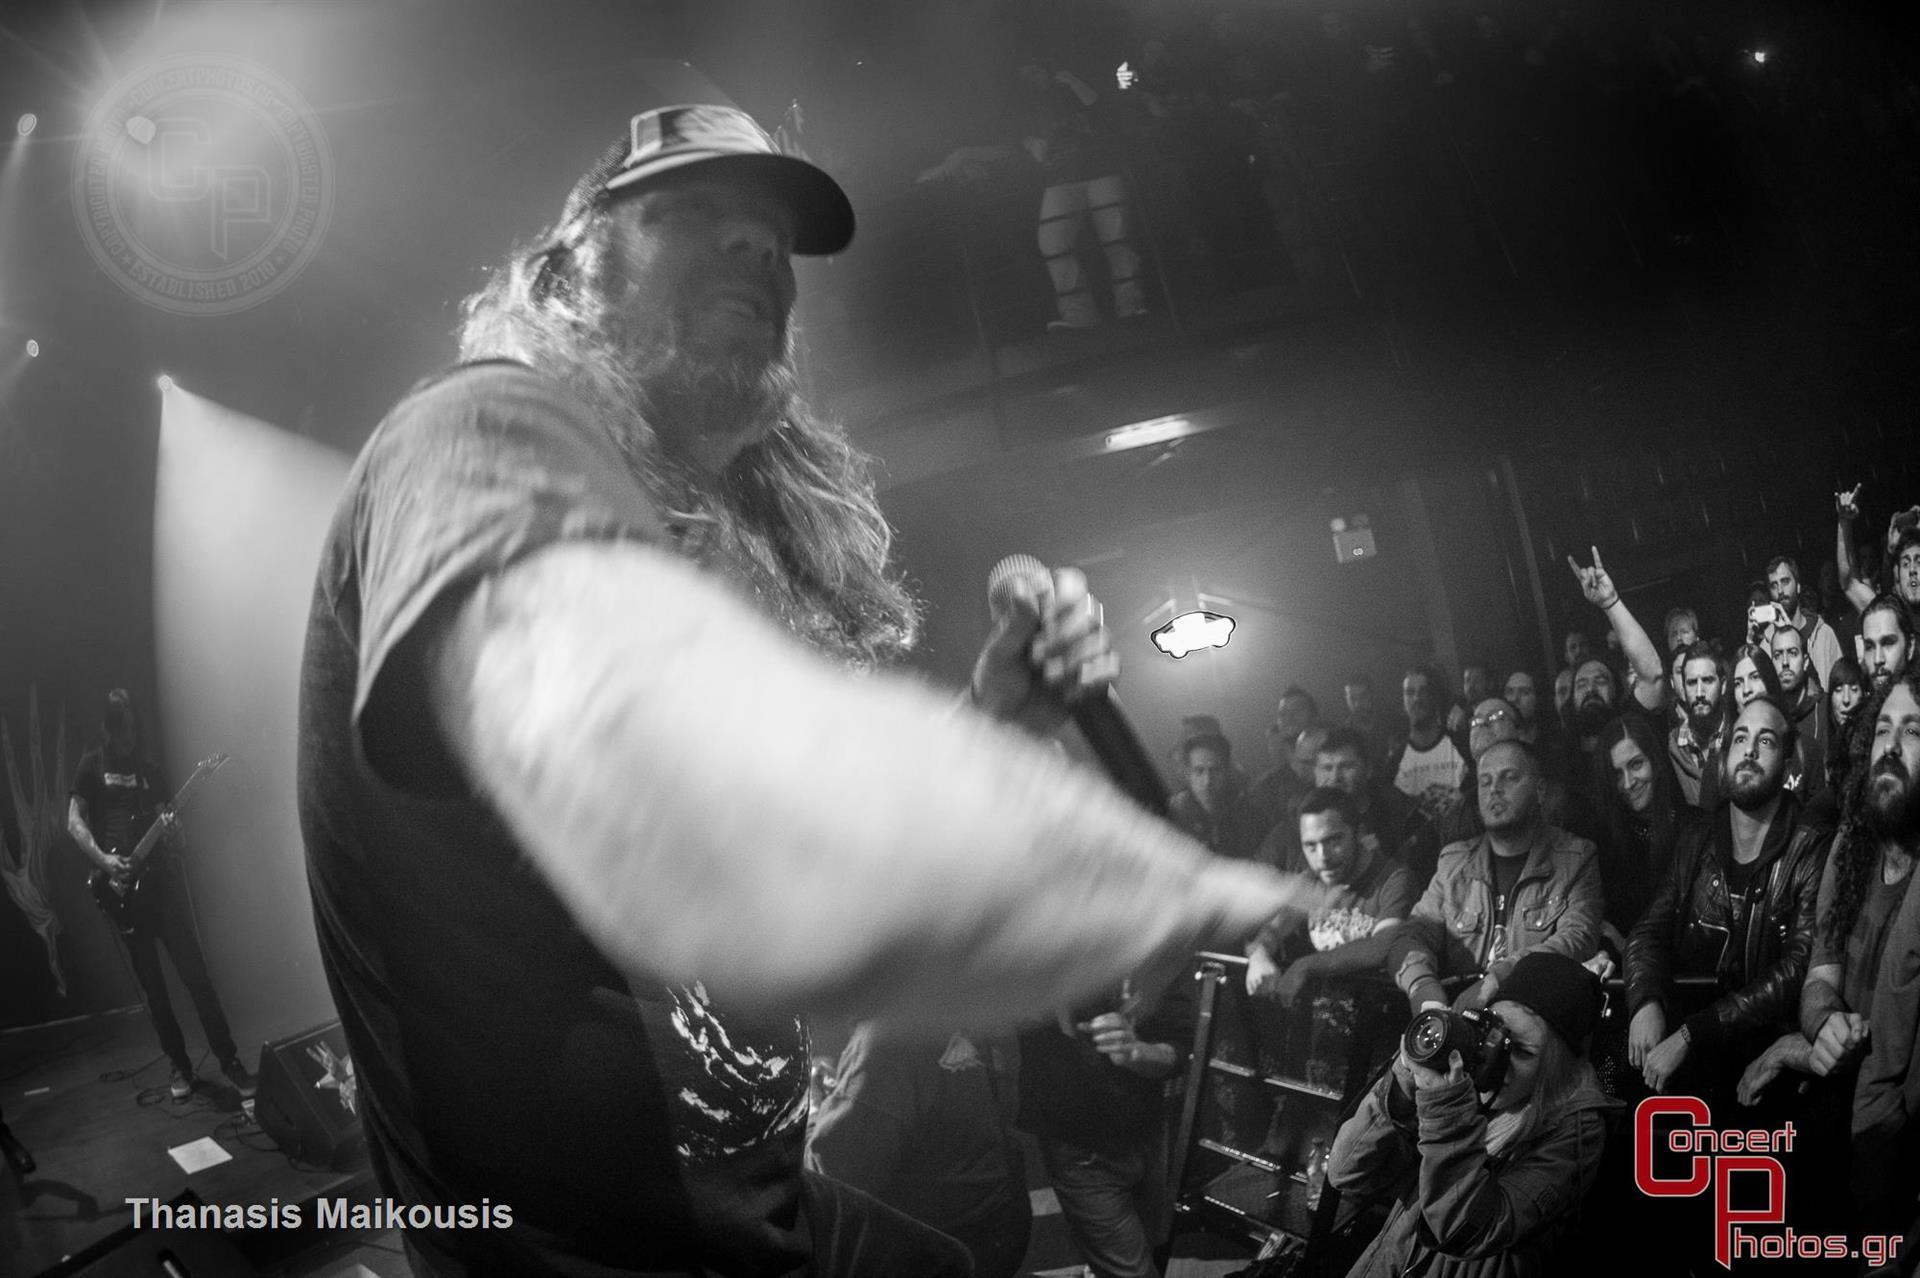 At The Gates-At The Gates Fuzz photographer: Thanasis Maikousis - ConcertPhotos - 20150109_2344_17